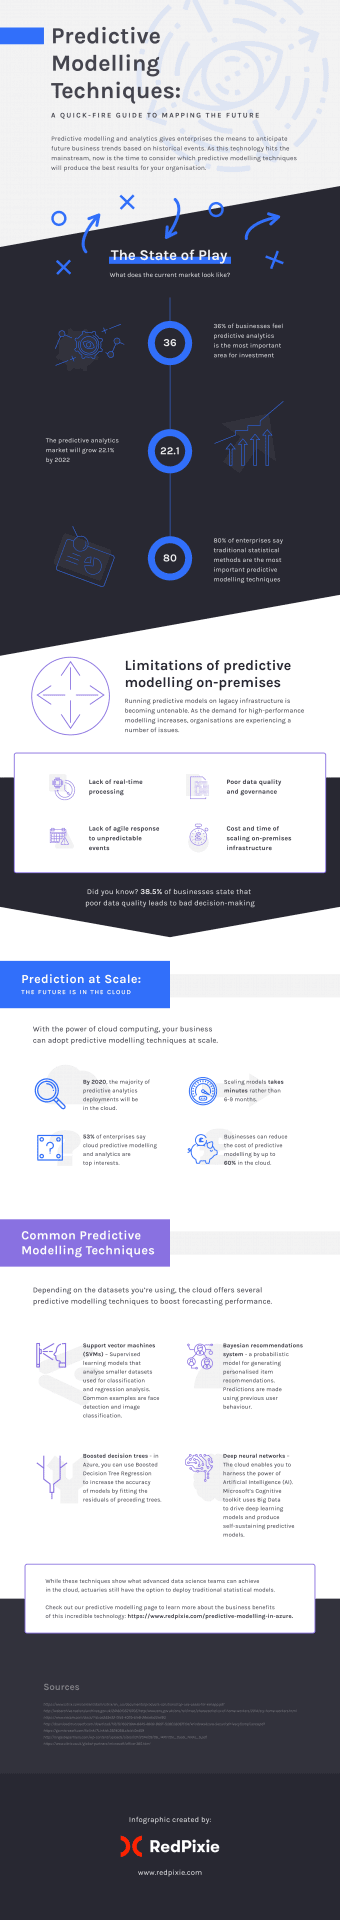 4 Ways to Map the Future with Predictive Modelling Techniques [Infographic] - Cubility